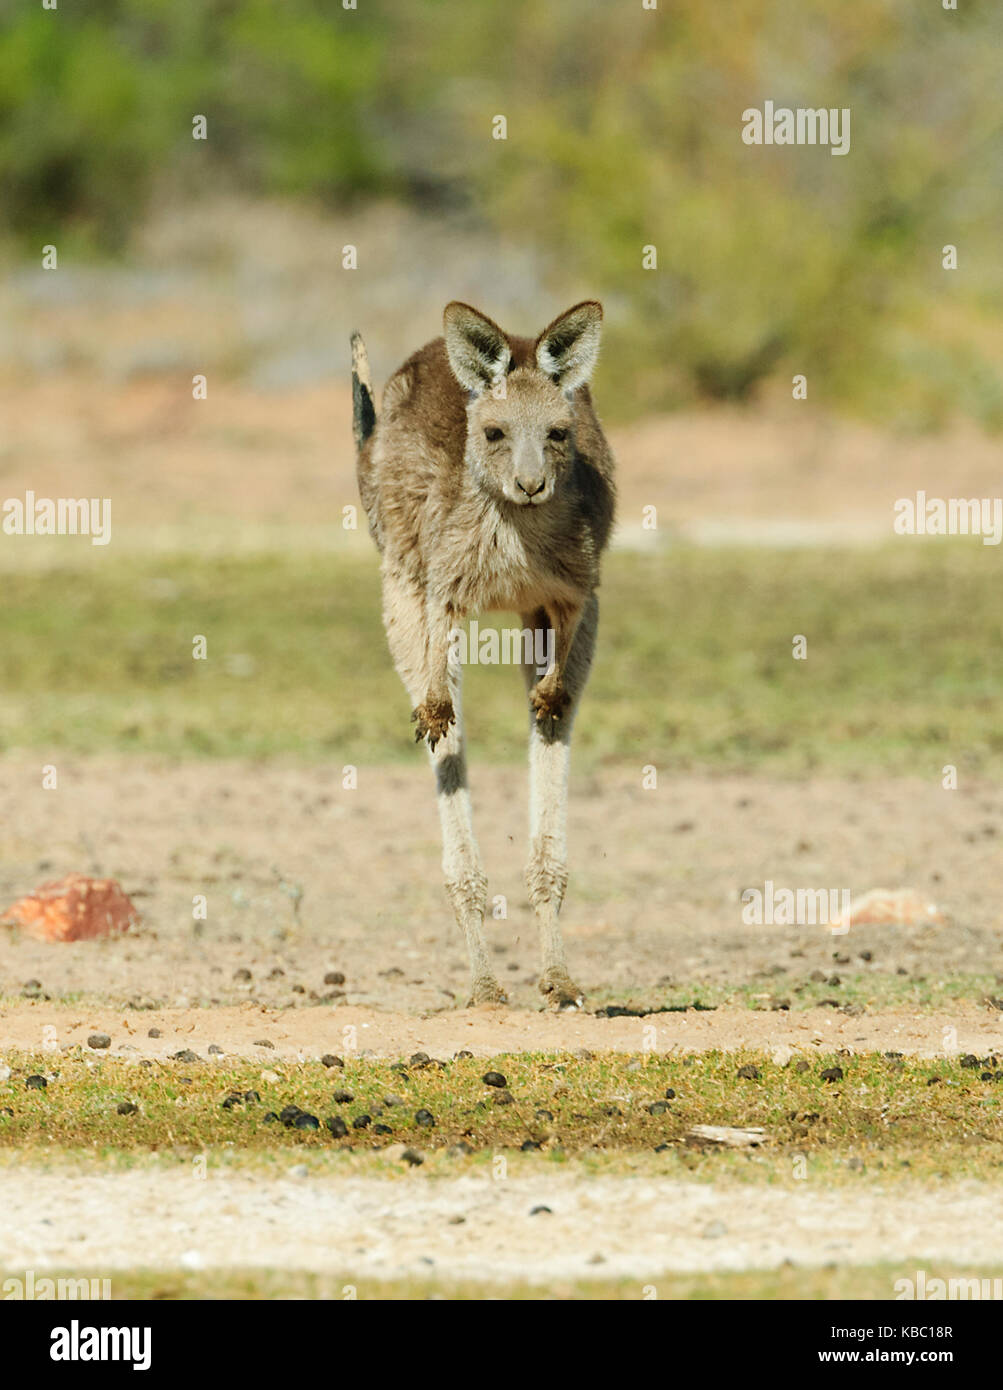 Red Kangaroo (Macropus rufus) hopping. Bowra, near Cunnamulla, Queensland, QLD, Australia - Stock Image